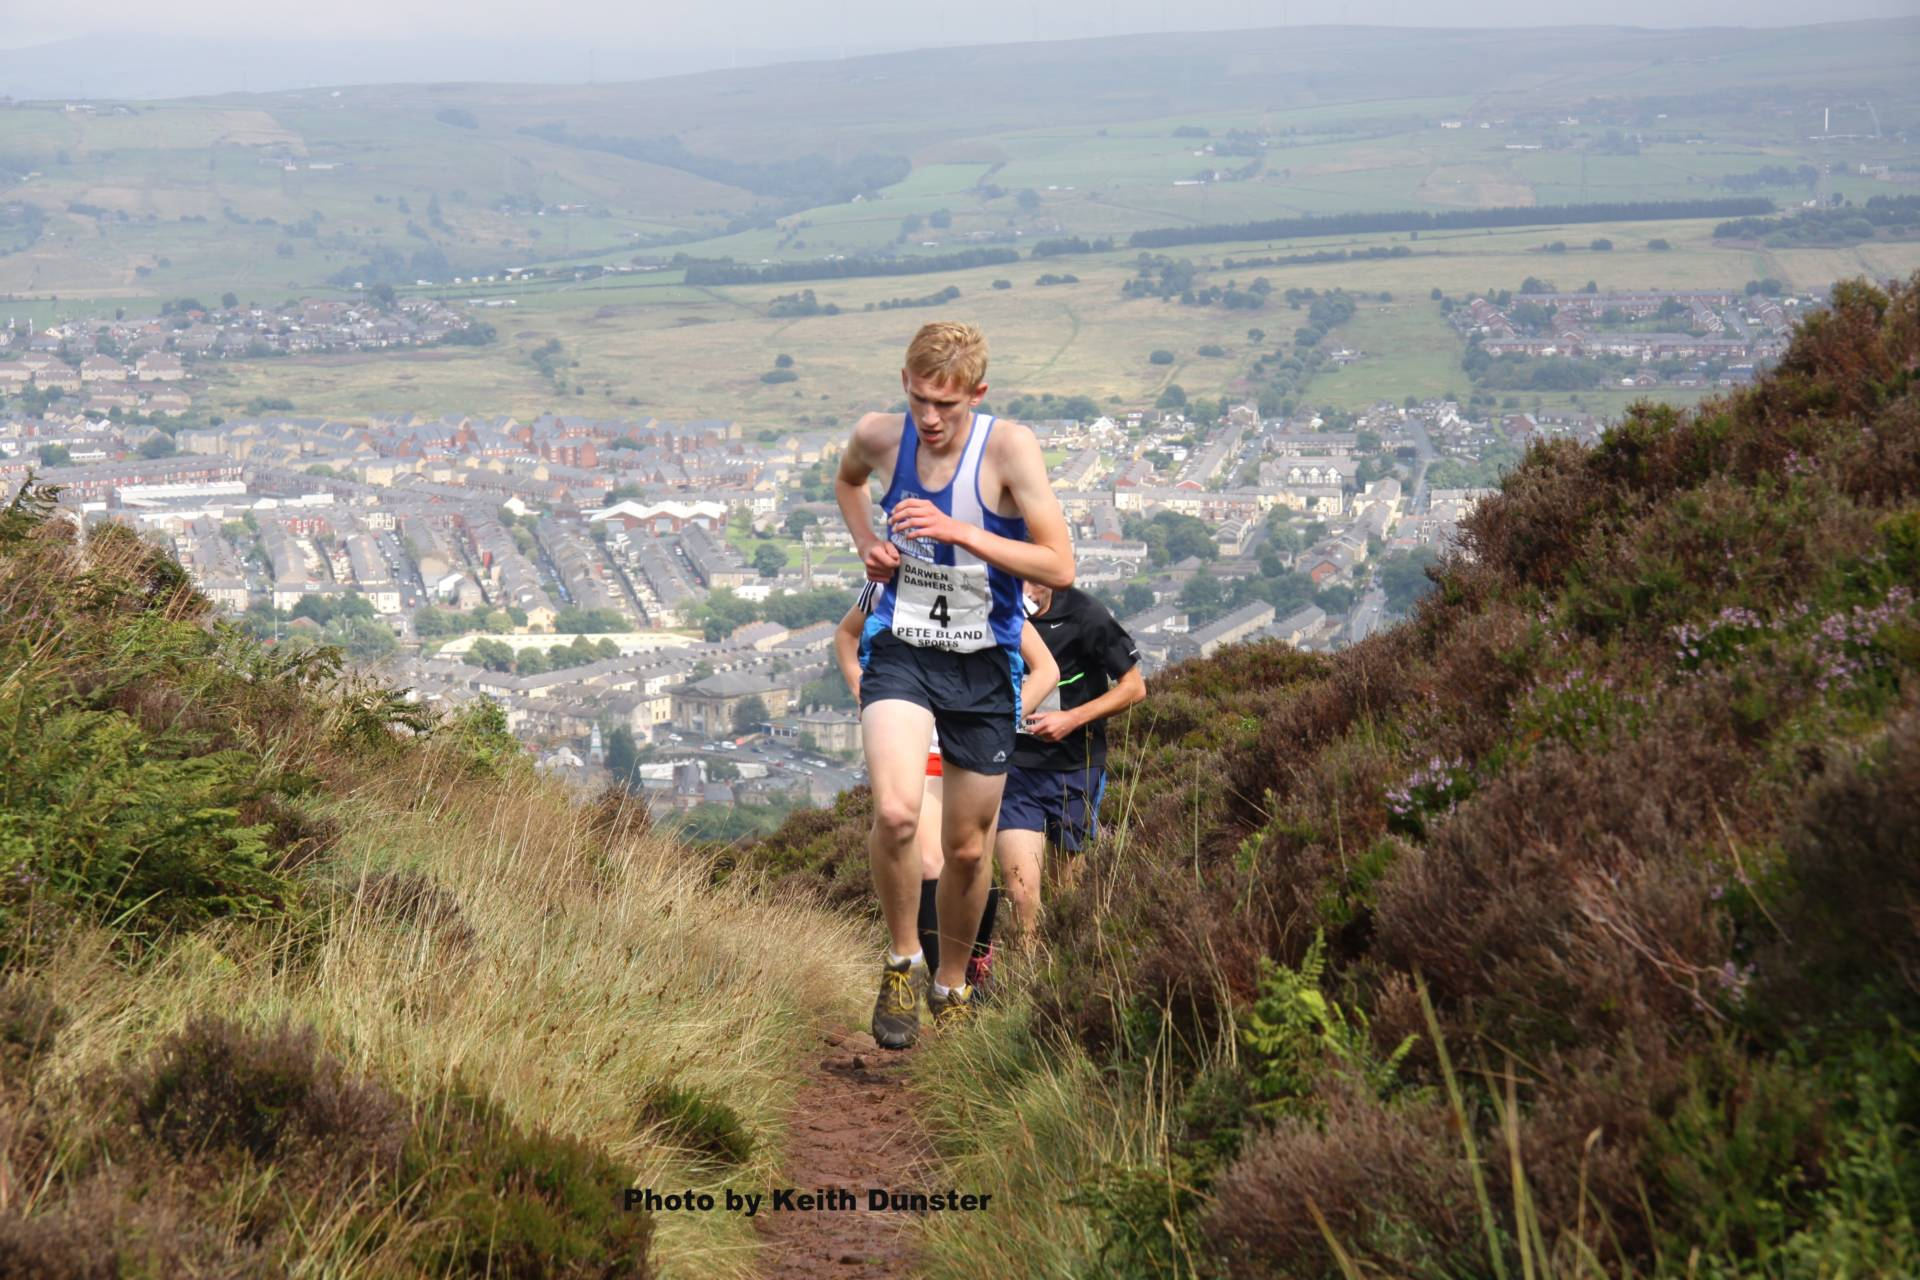 Darwen Gala Race and Results Round Up